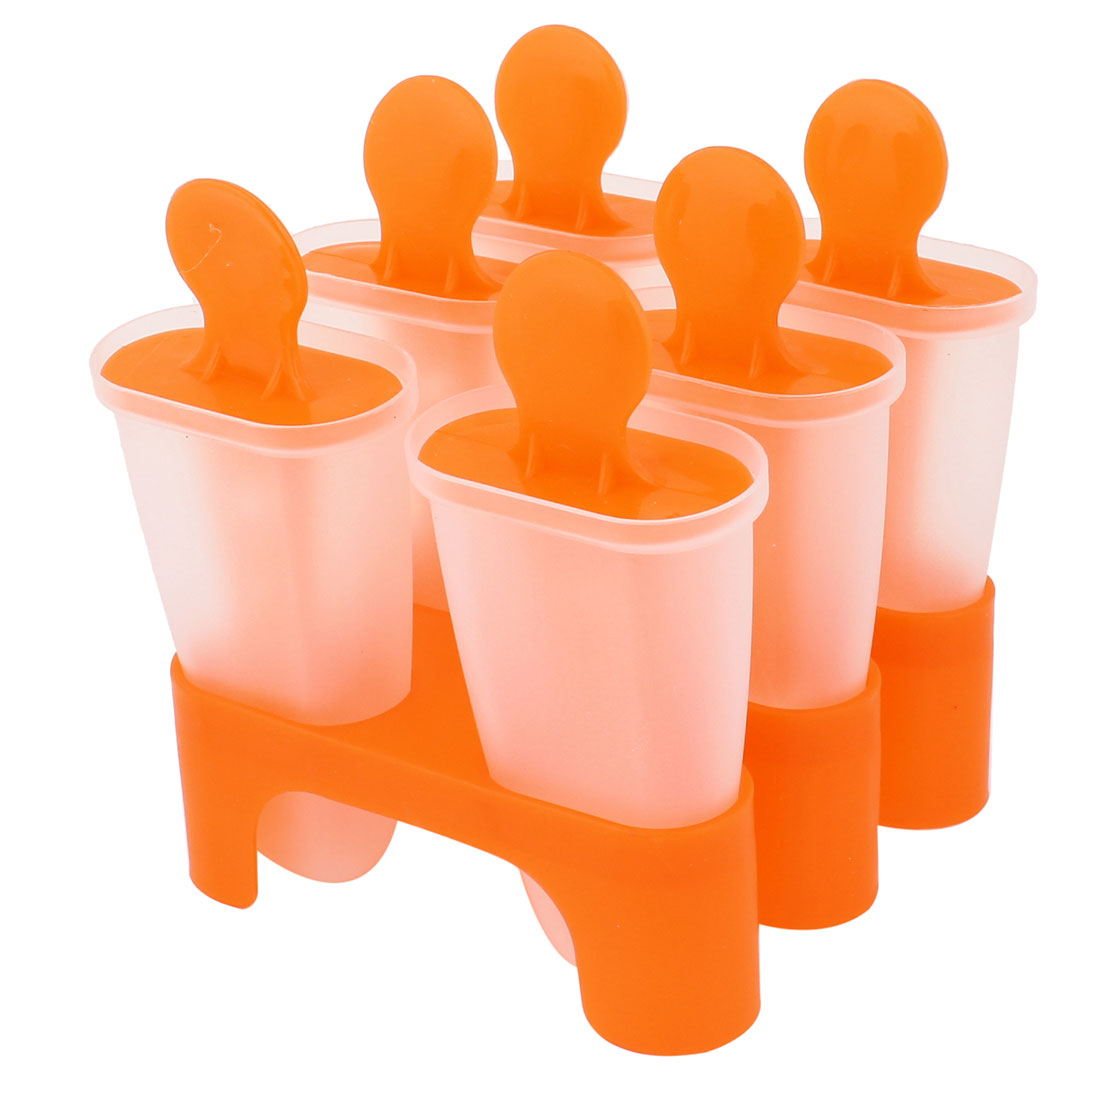 Home Kitchen Orange Clear Plastic DIY Popsicle Making Ice Cream Molds Mould